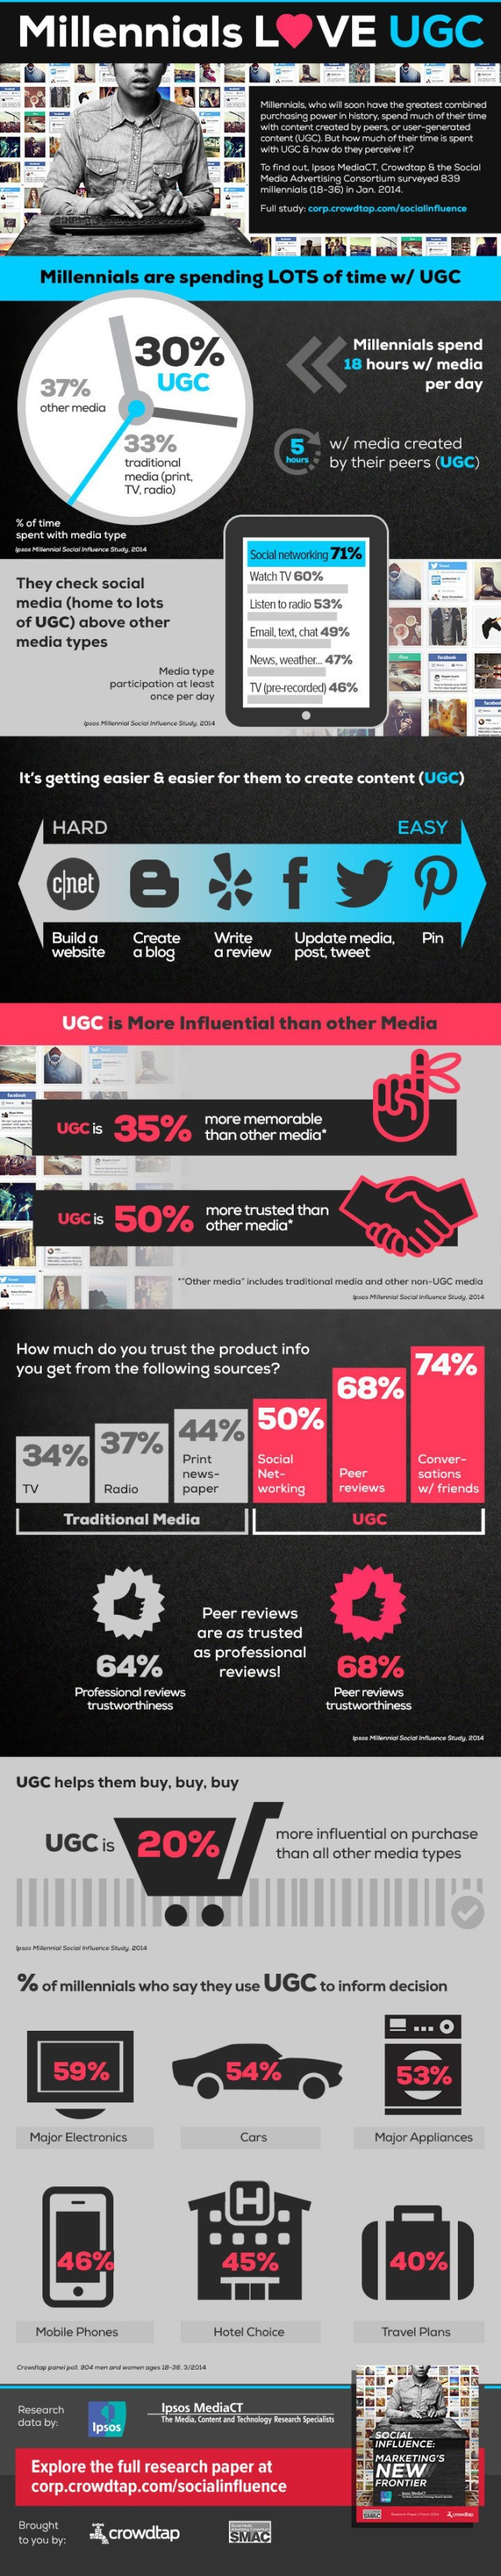 millennials user generated content